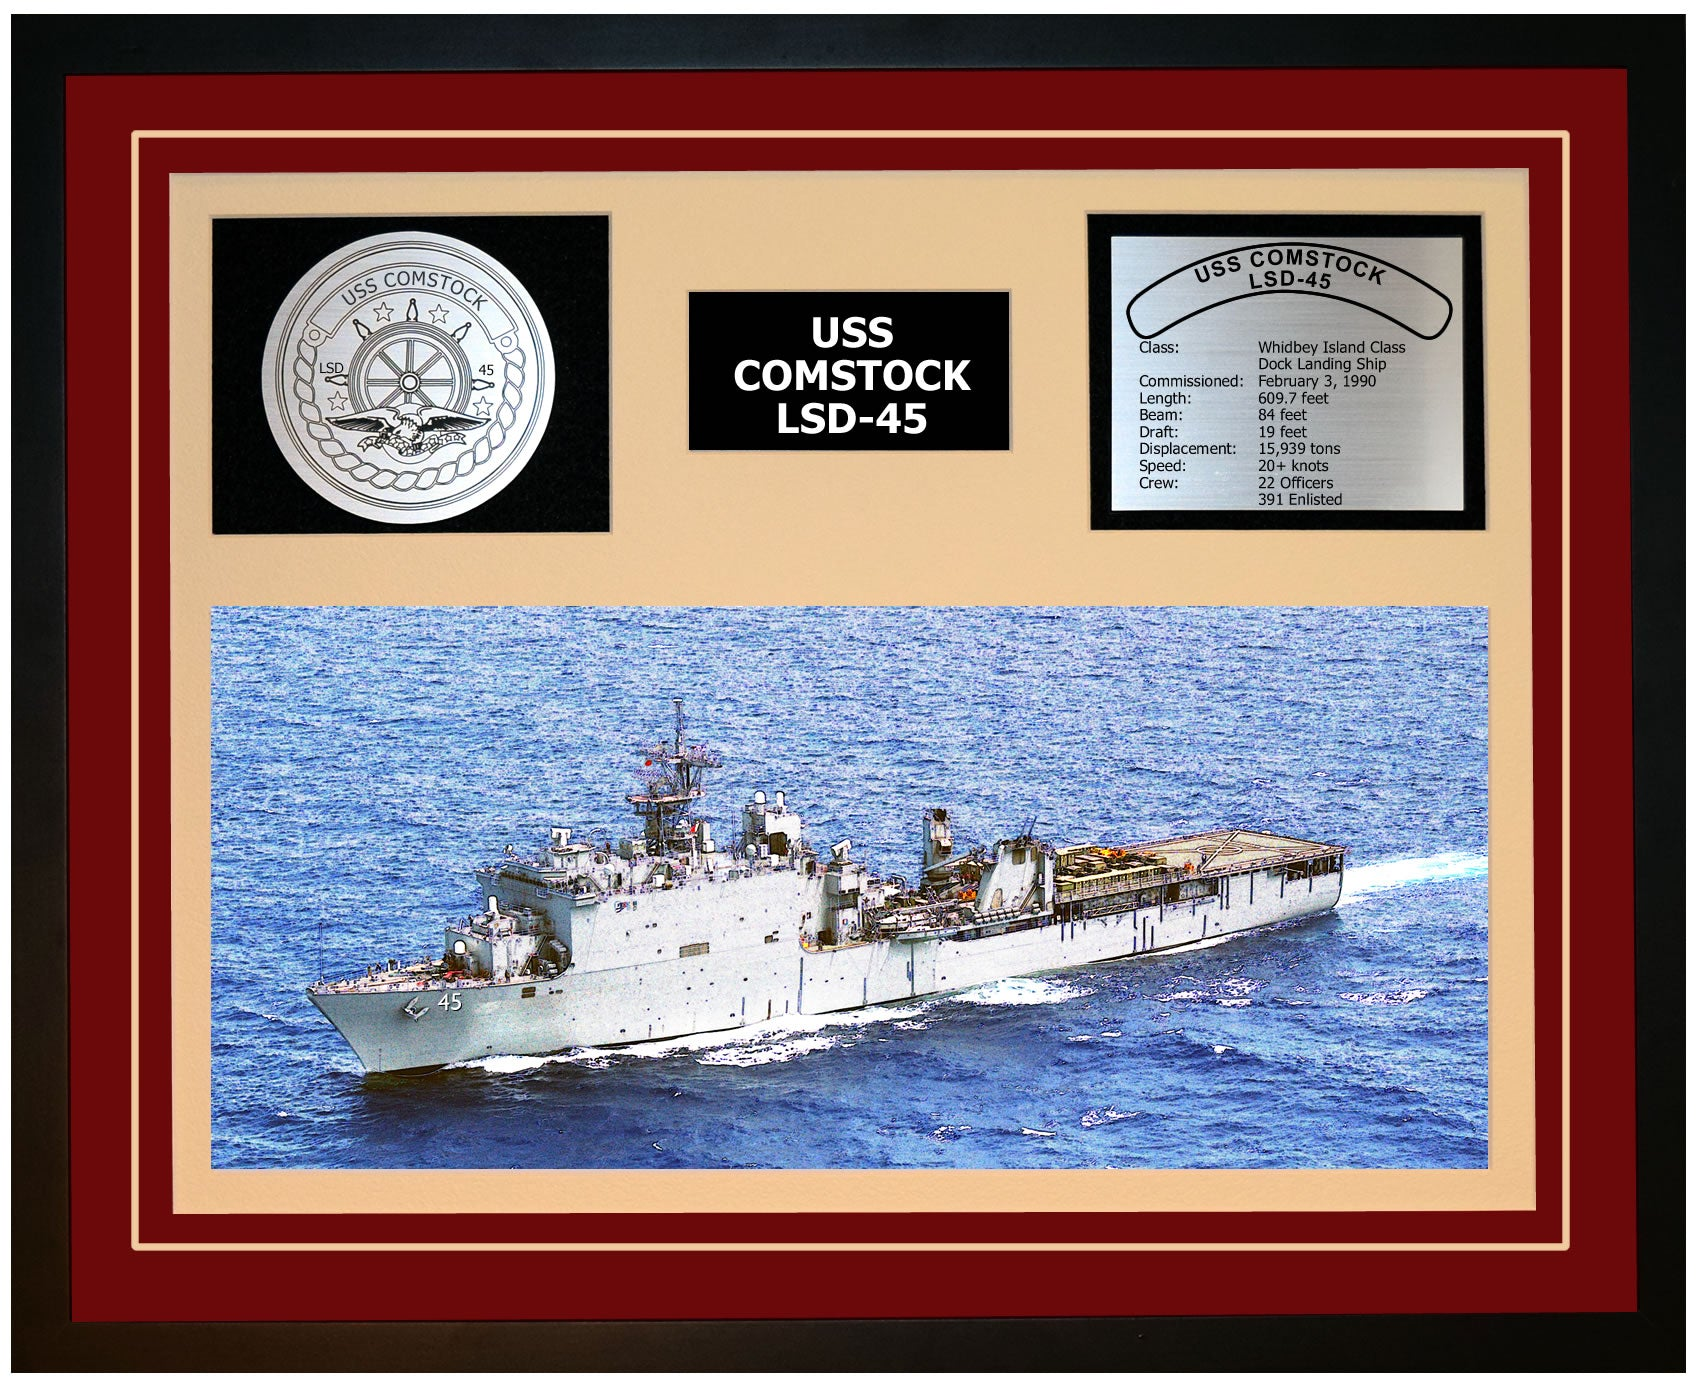 USS COMSTOCK LSD-45 Framed Navy Ship Display Burgundy